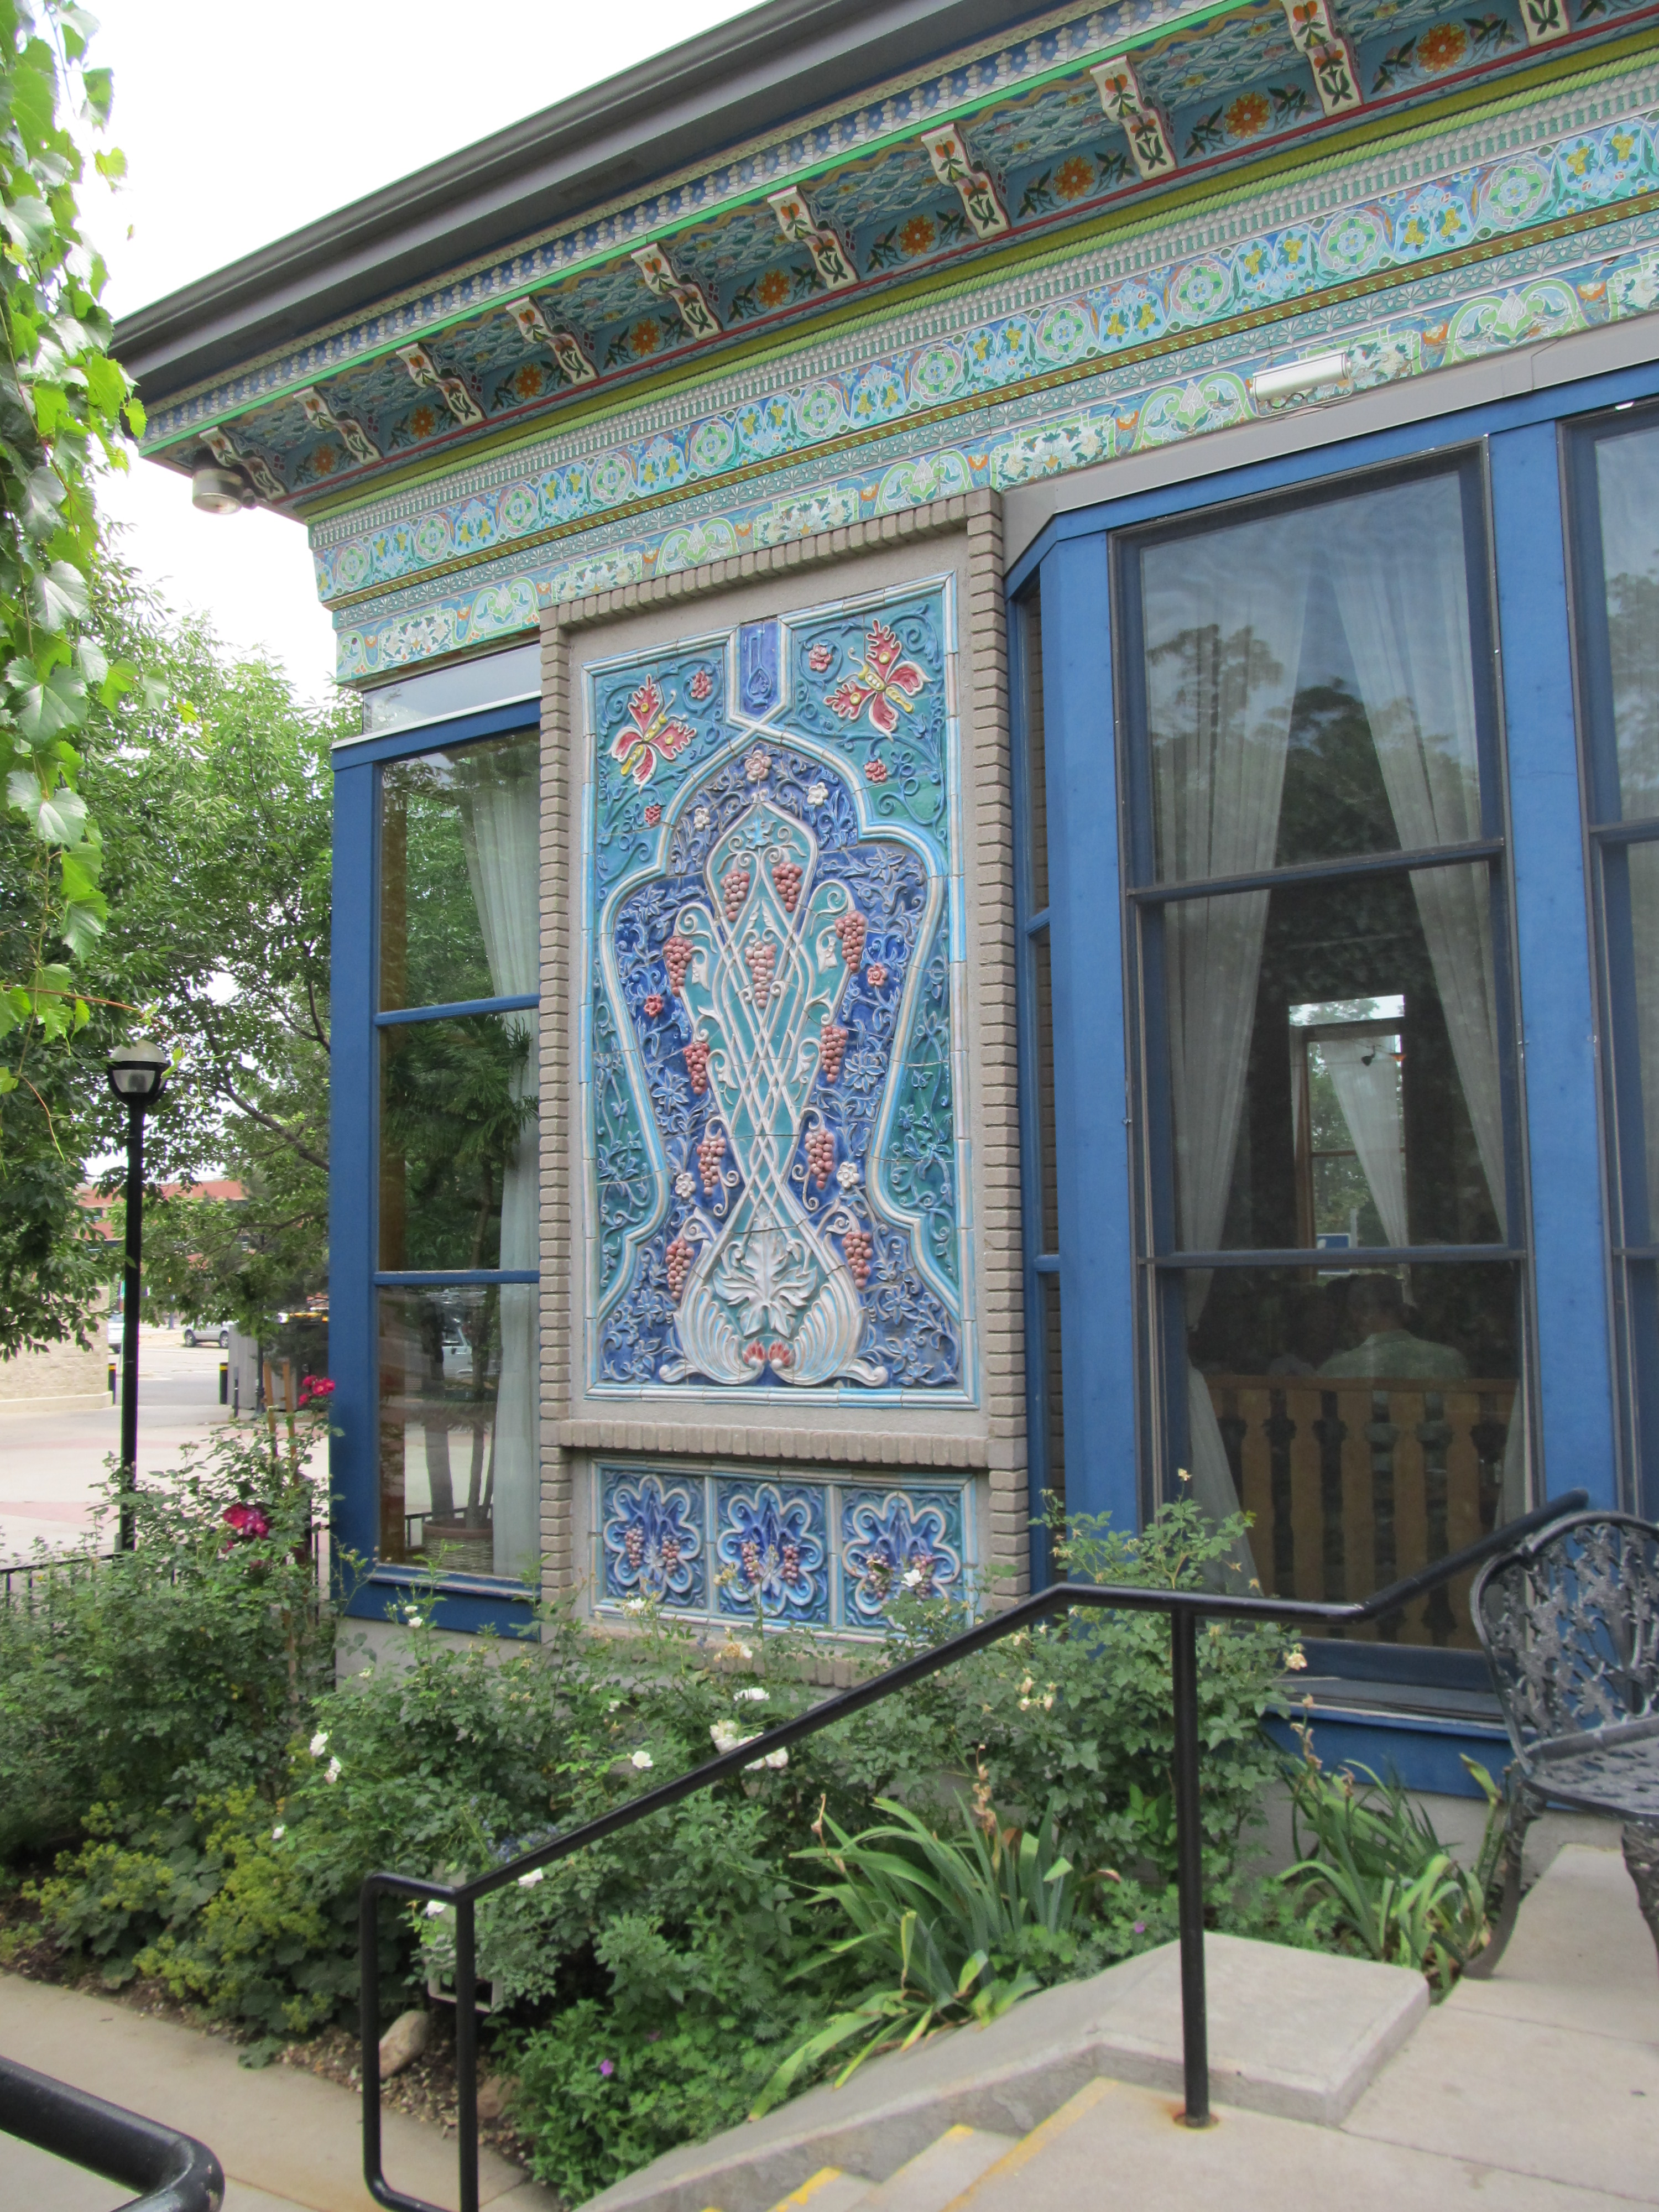 Dushanbe Teahouse Details Starlit Nights